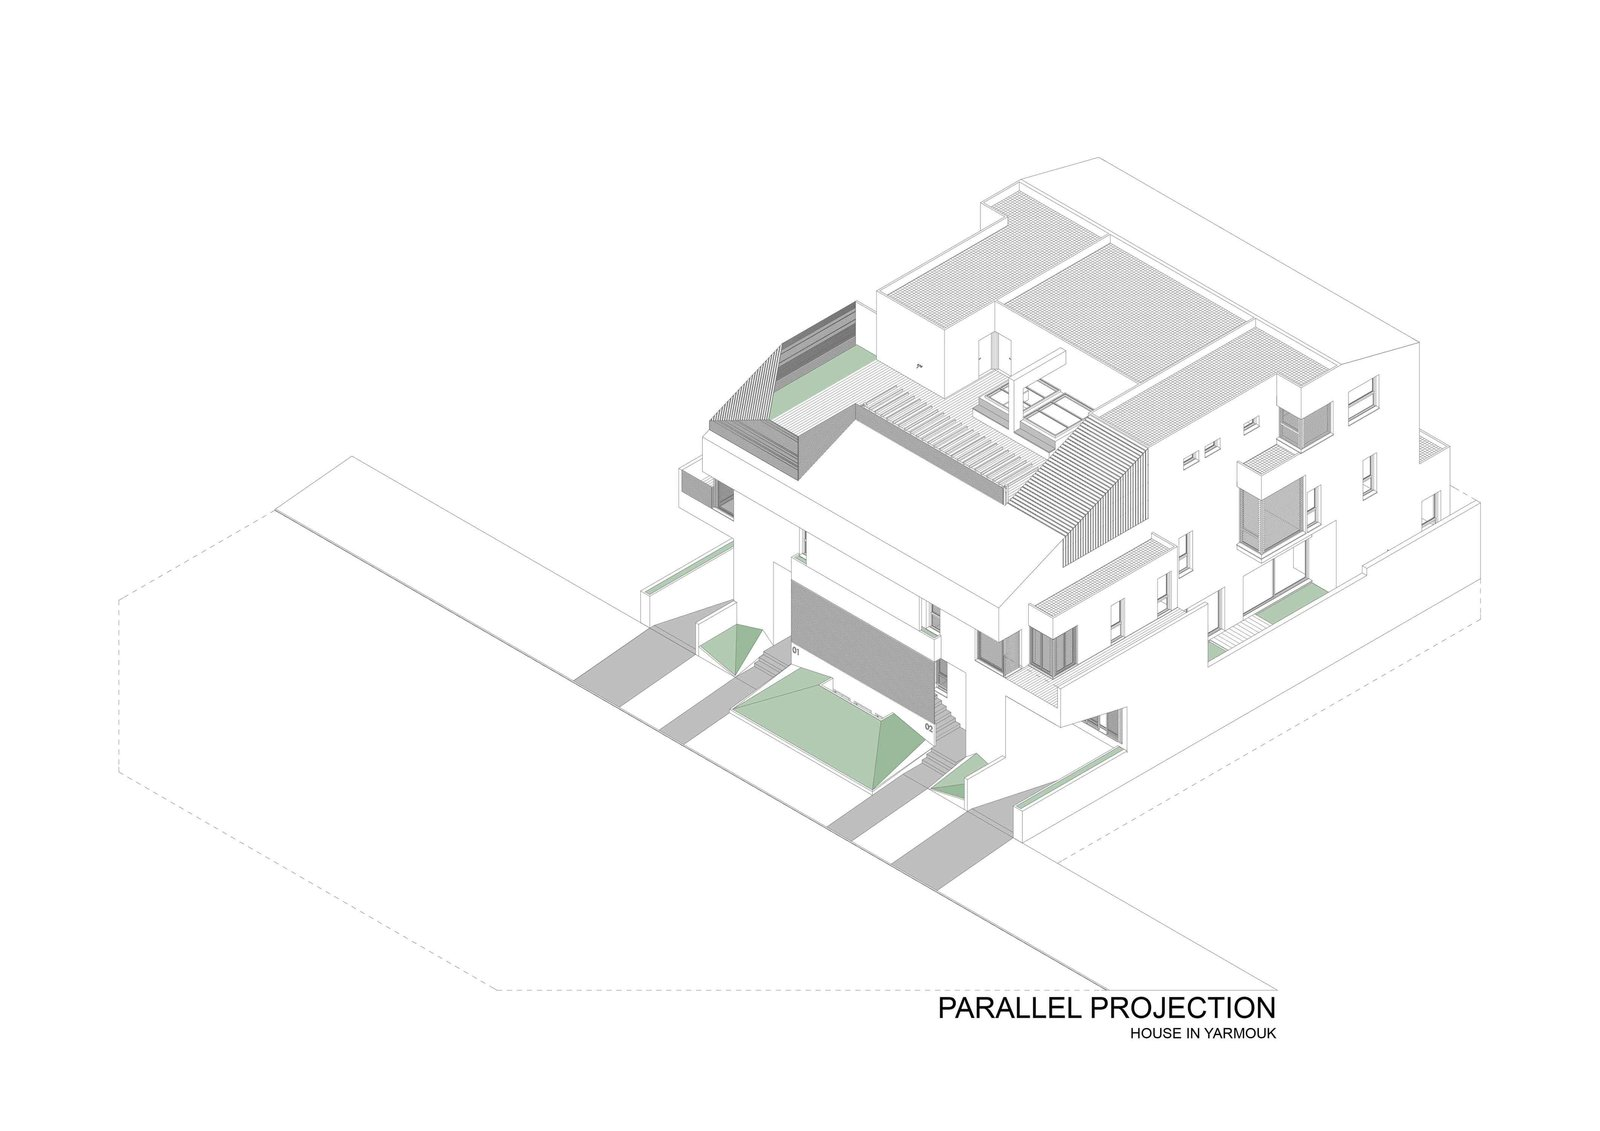 A House in Yarmouk by Studio Toggle